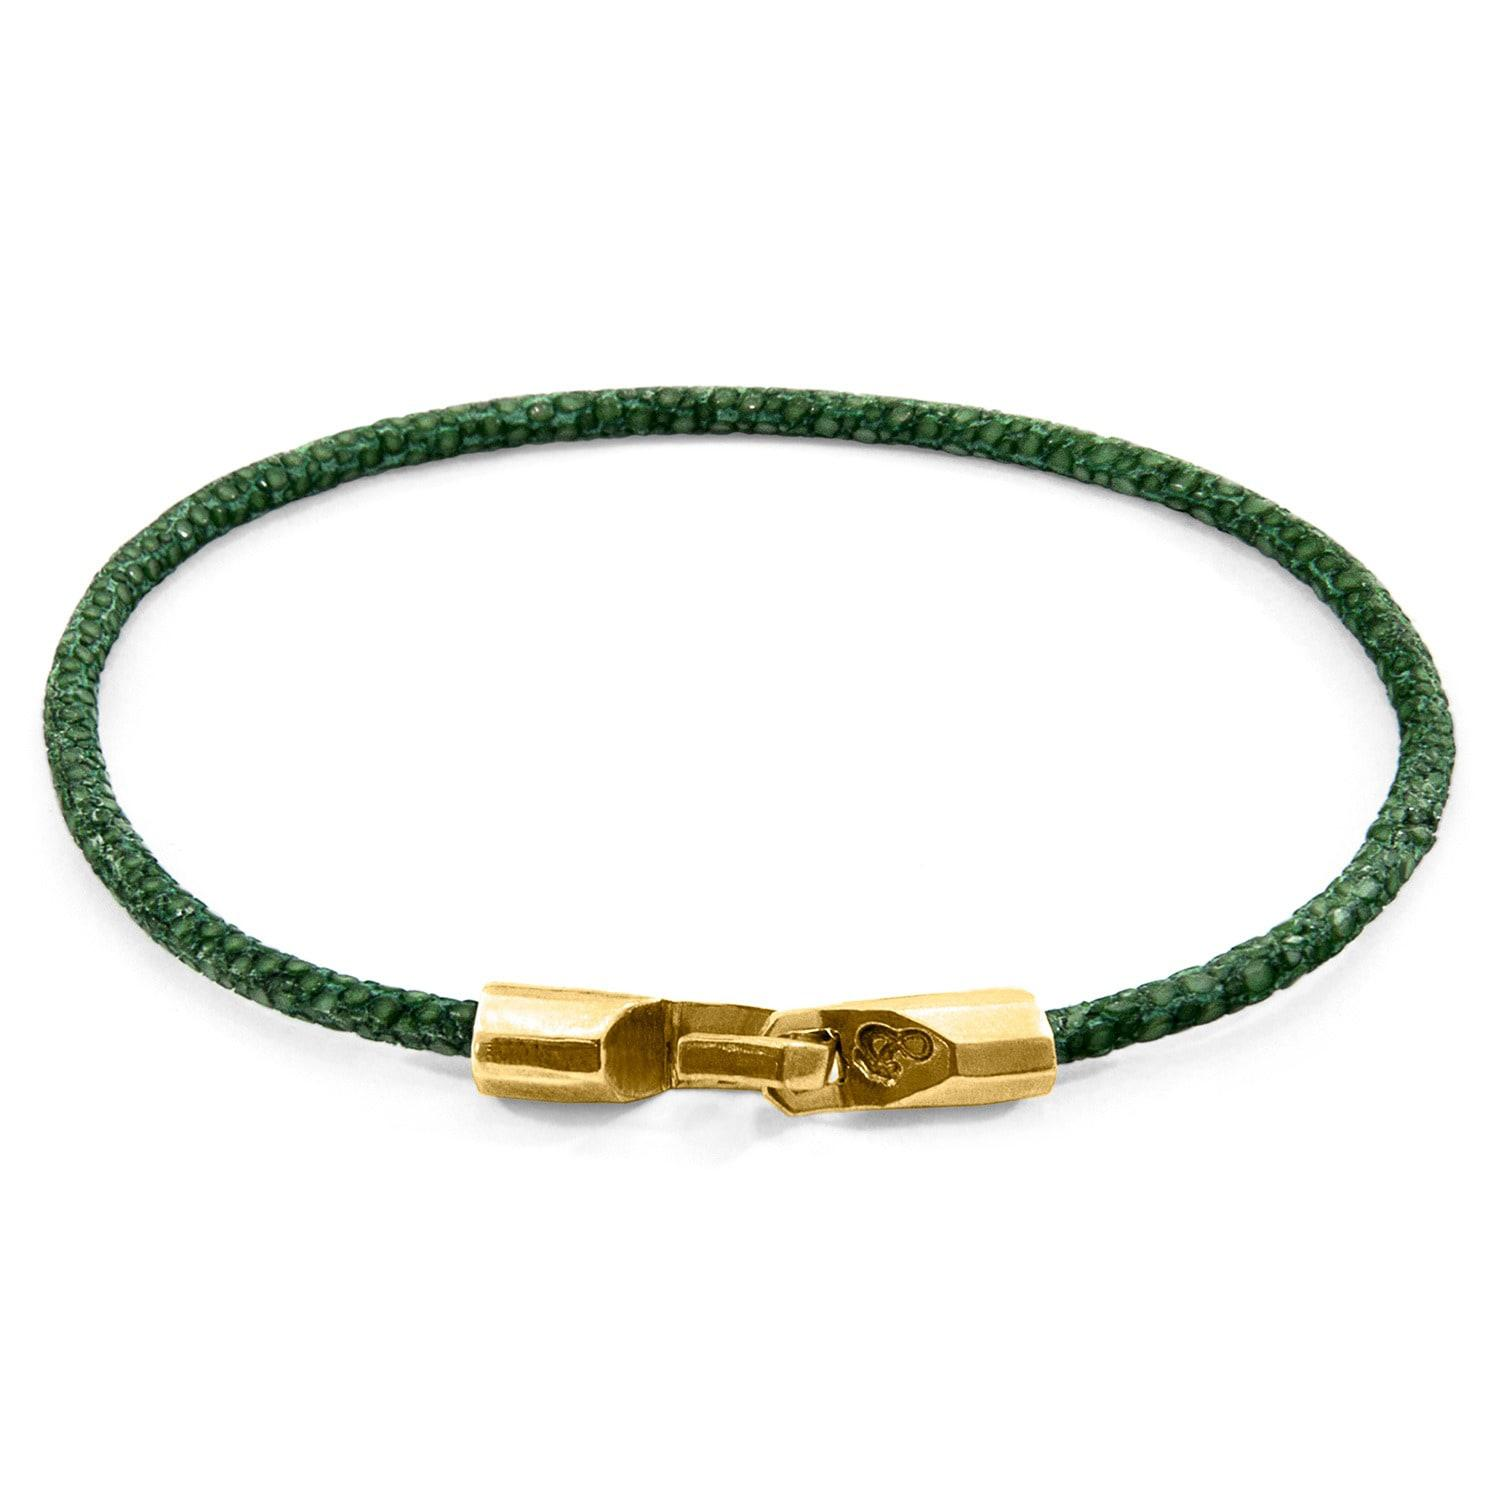 Anchor & Crew Dundee 9kt Yellow Gold & Stingray Leather Bracelet - Bordeaux Red ArDwk